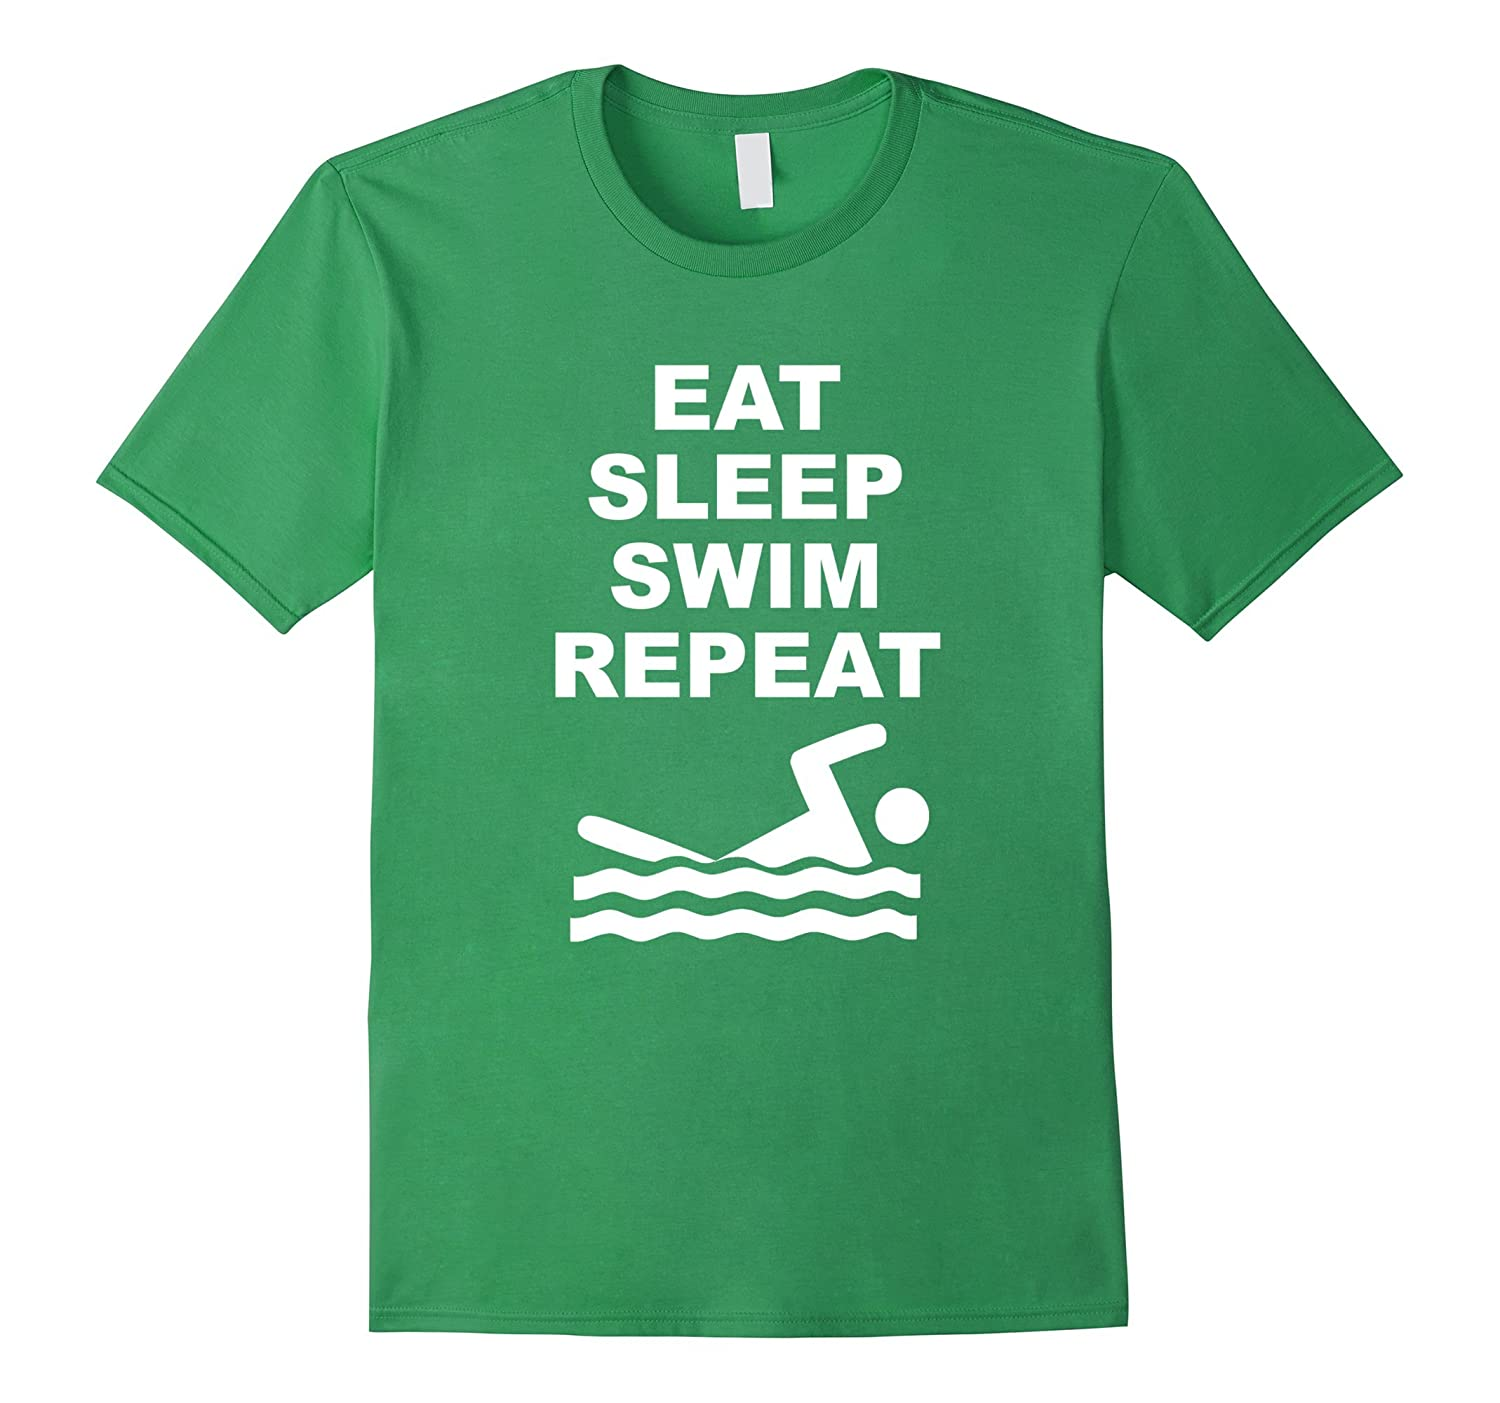 Funny swimming shirt shirts for swimmers swim gifts goatstee for Wearing t shirt in swimming pool